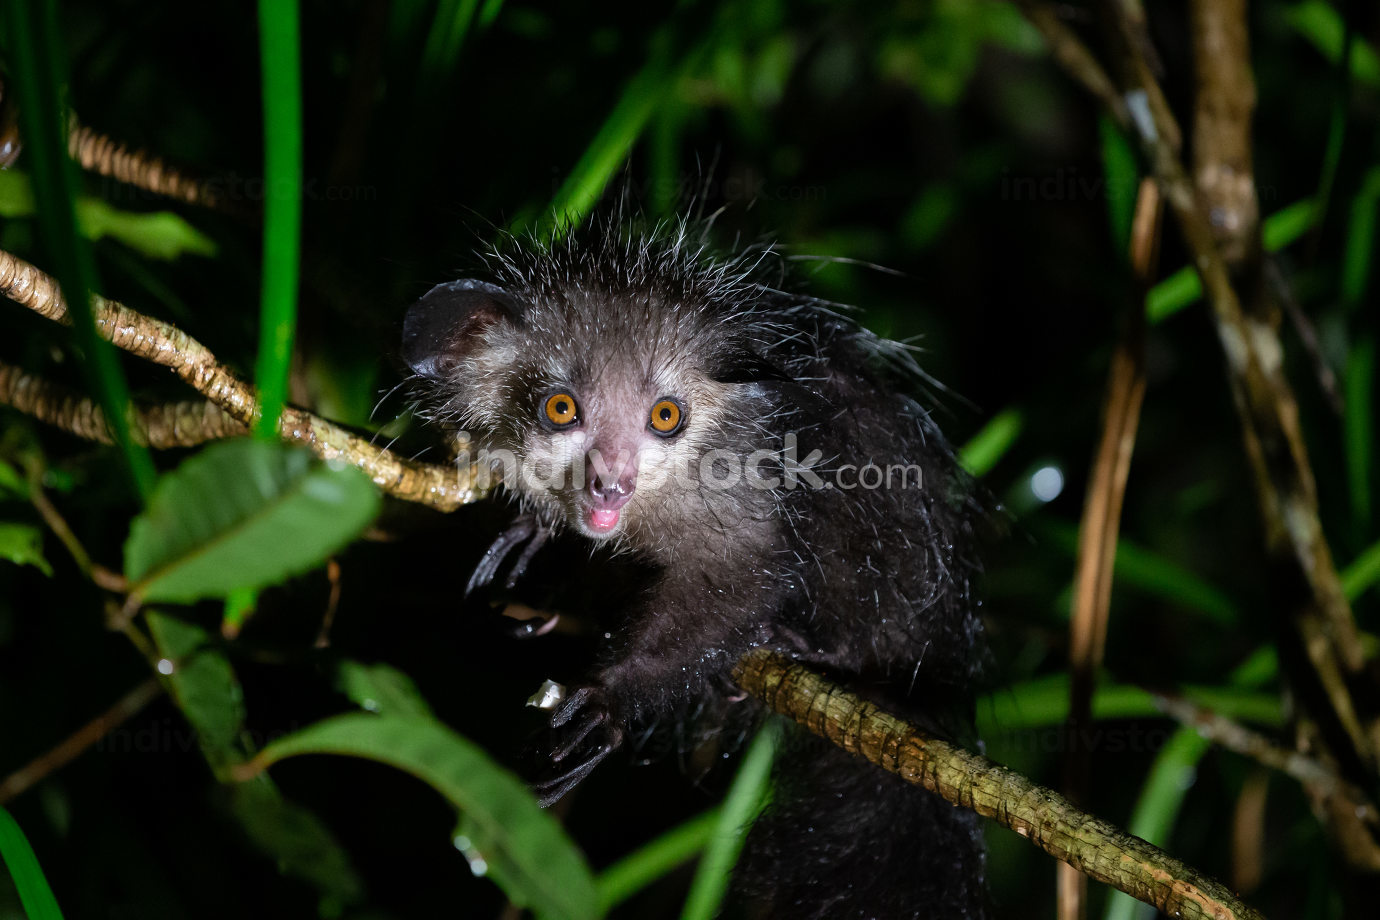 The rare Aye-Aye lemur that is only nocturnal